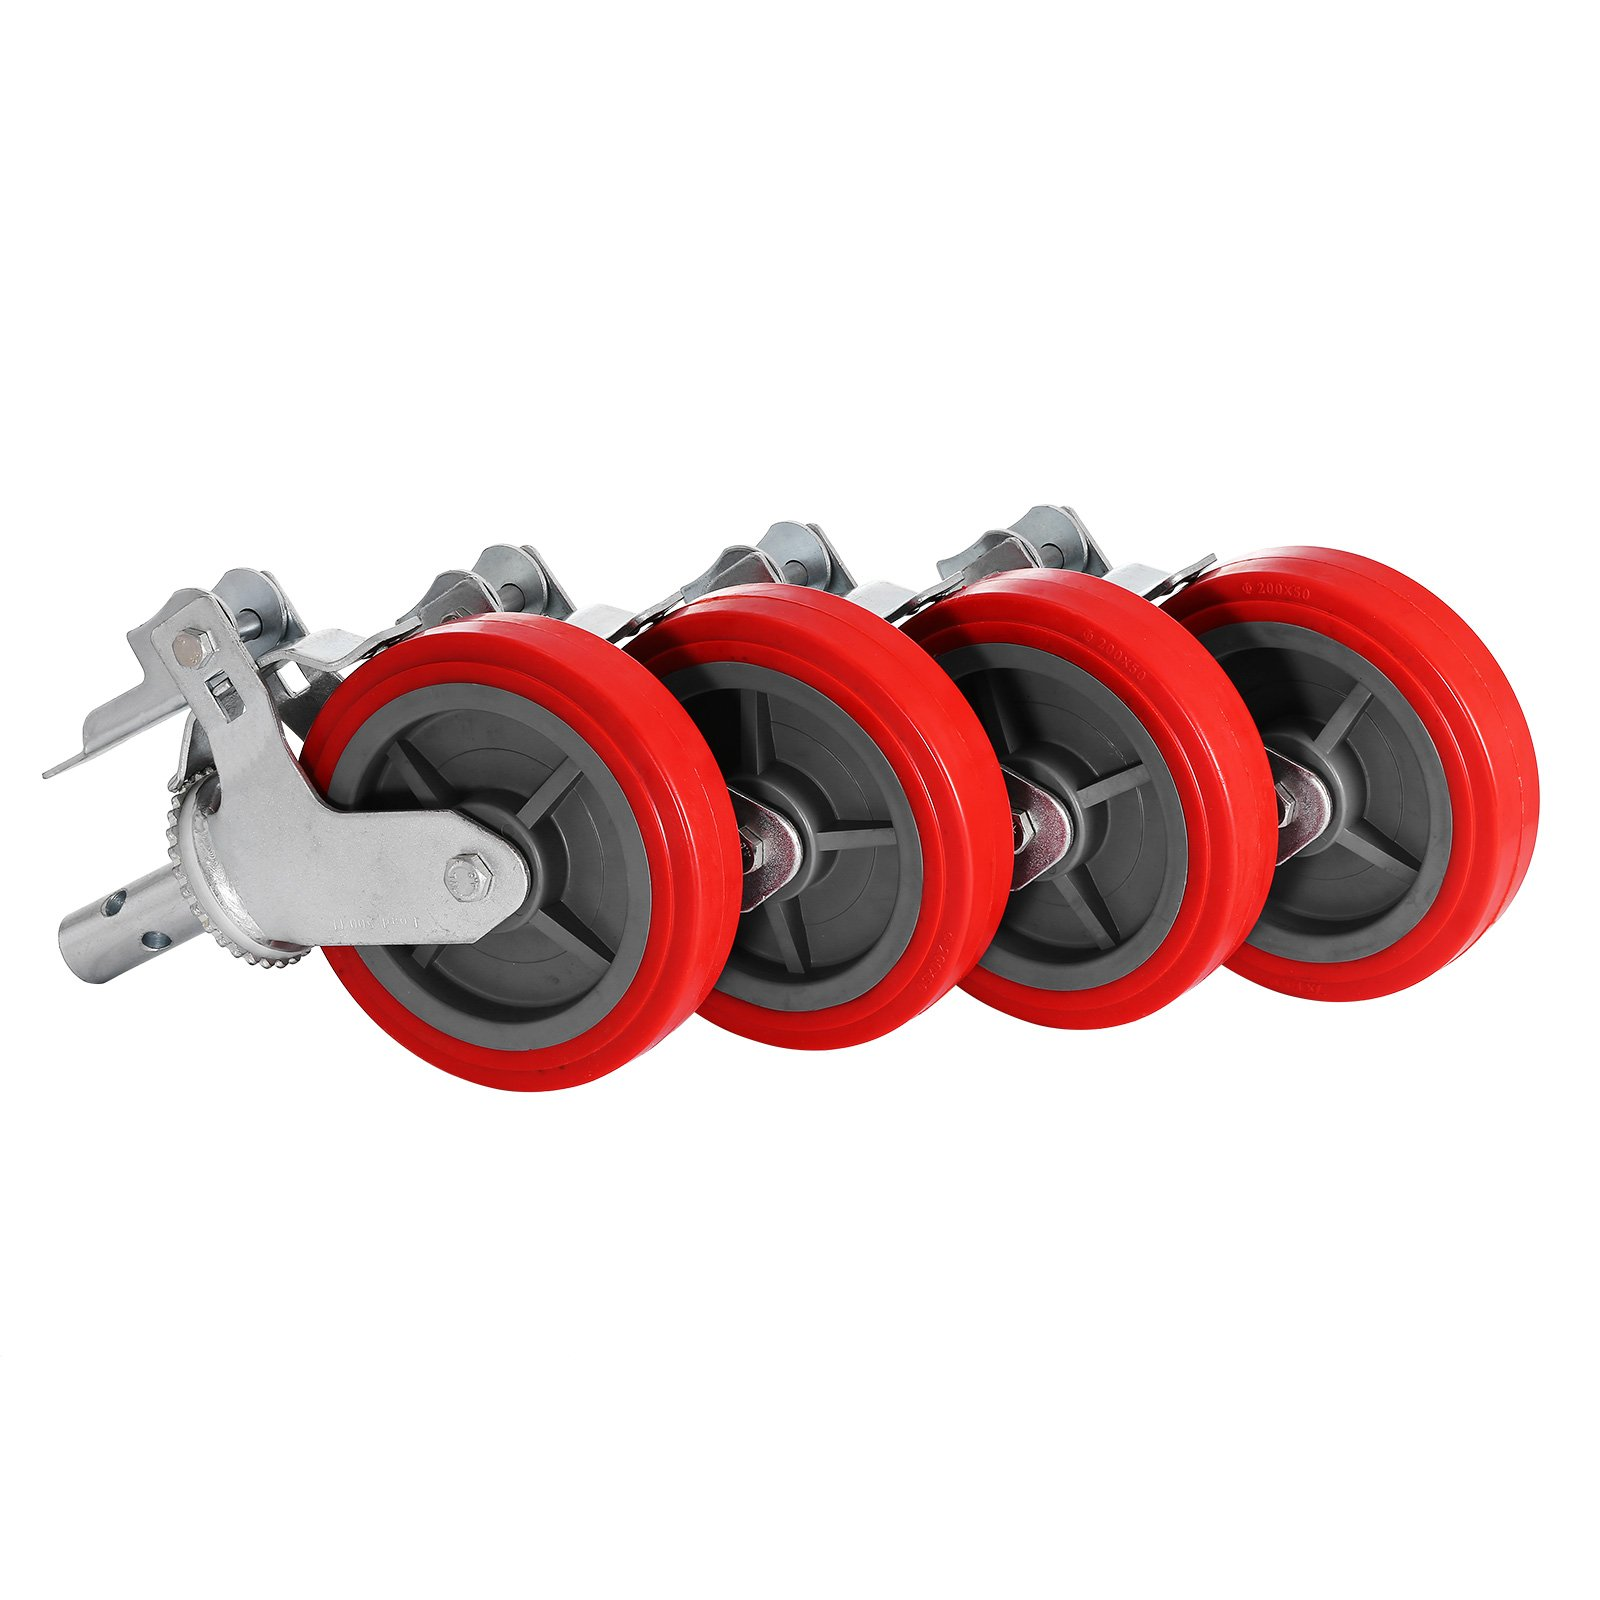 Geindus Set Of 4 Scaffolding Casters Polyurethane 600LBS Scaffolding Wheels Scaffold Caster Wheel On Iron With Brake Lock by Geindus